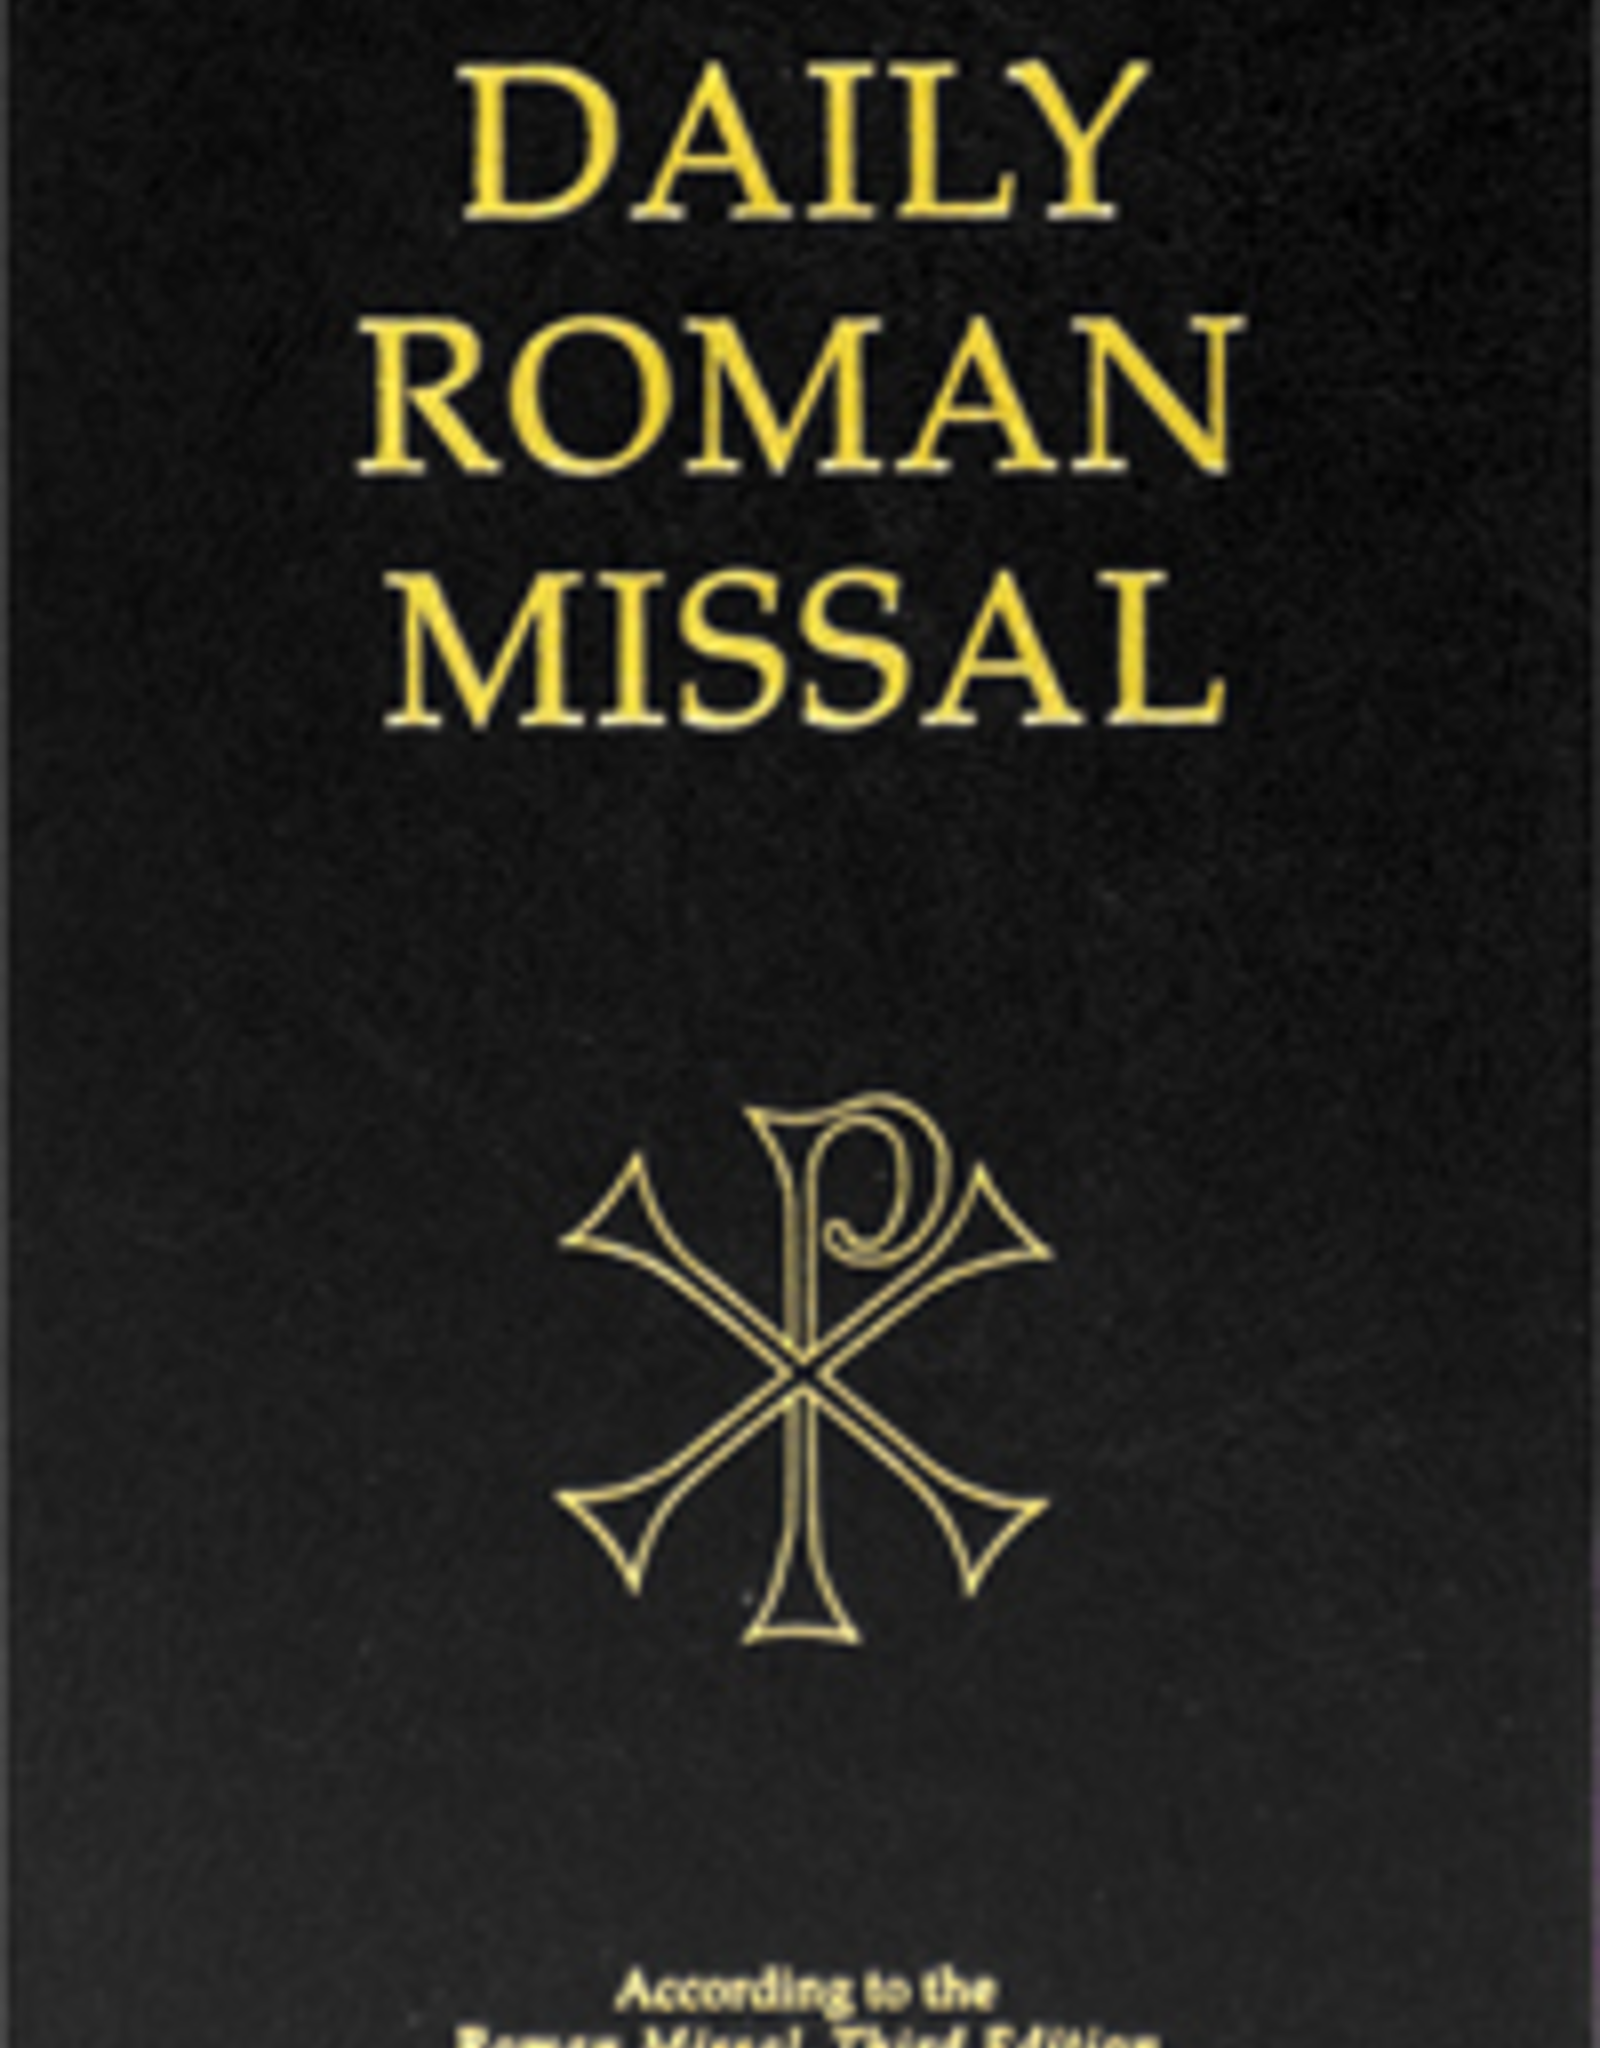 Midwest Theological Forum Daily Roman Missal, Third Edition of the Order of Mass  (Hardcover, Black)